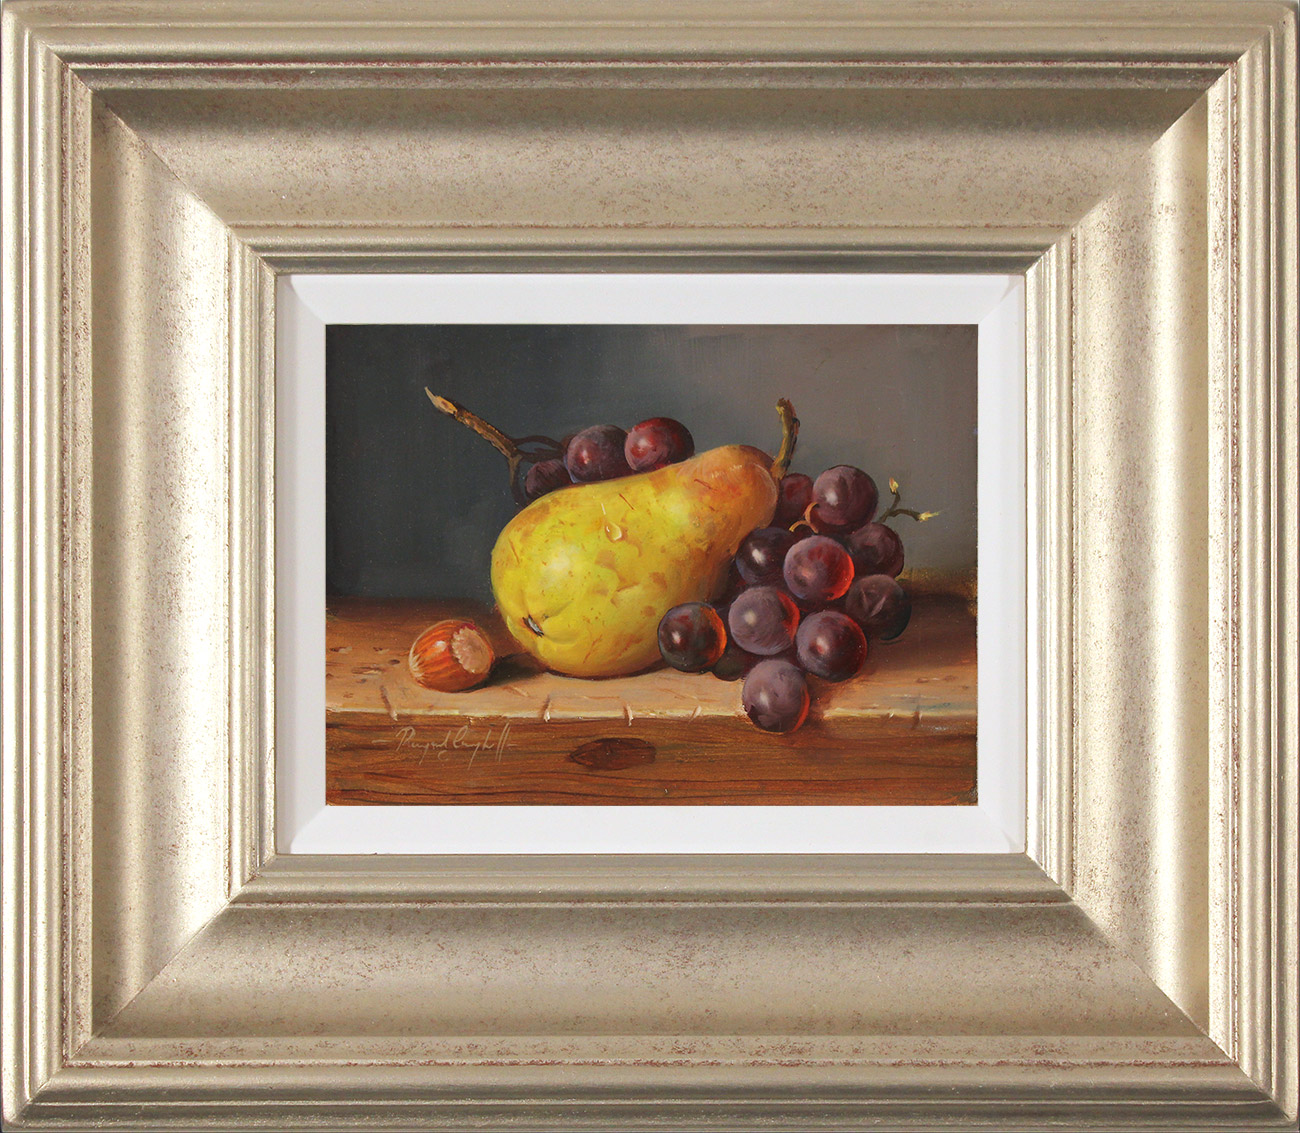 Raymond Campbell, Original oil painting on panel, Pear, Walnut and Grapes, click to enlarge